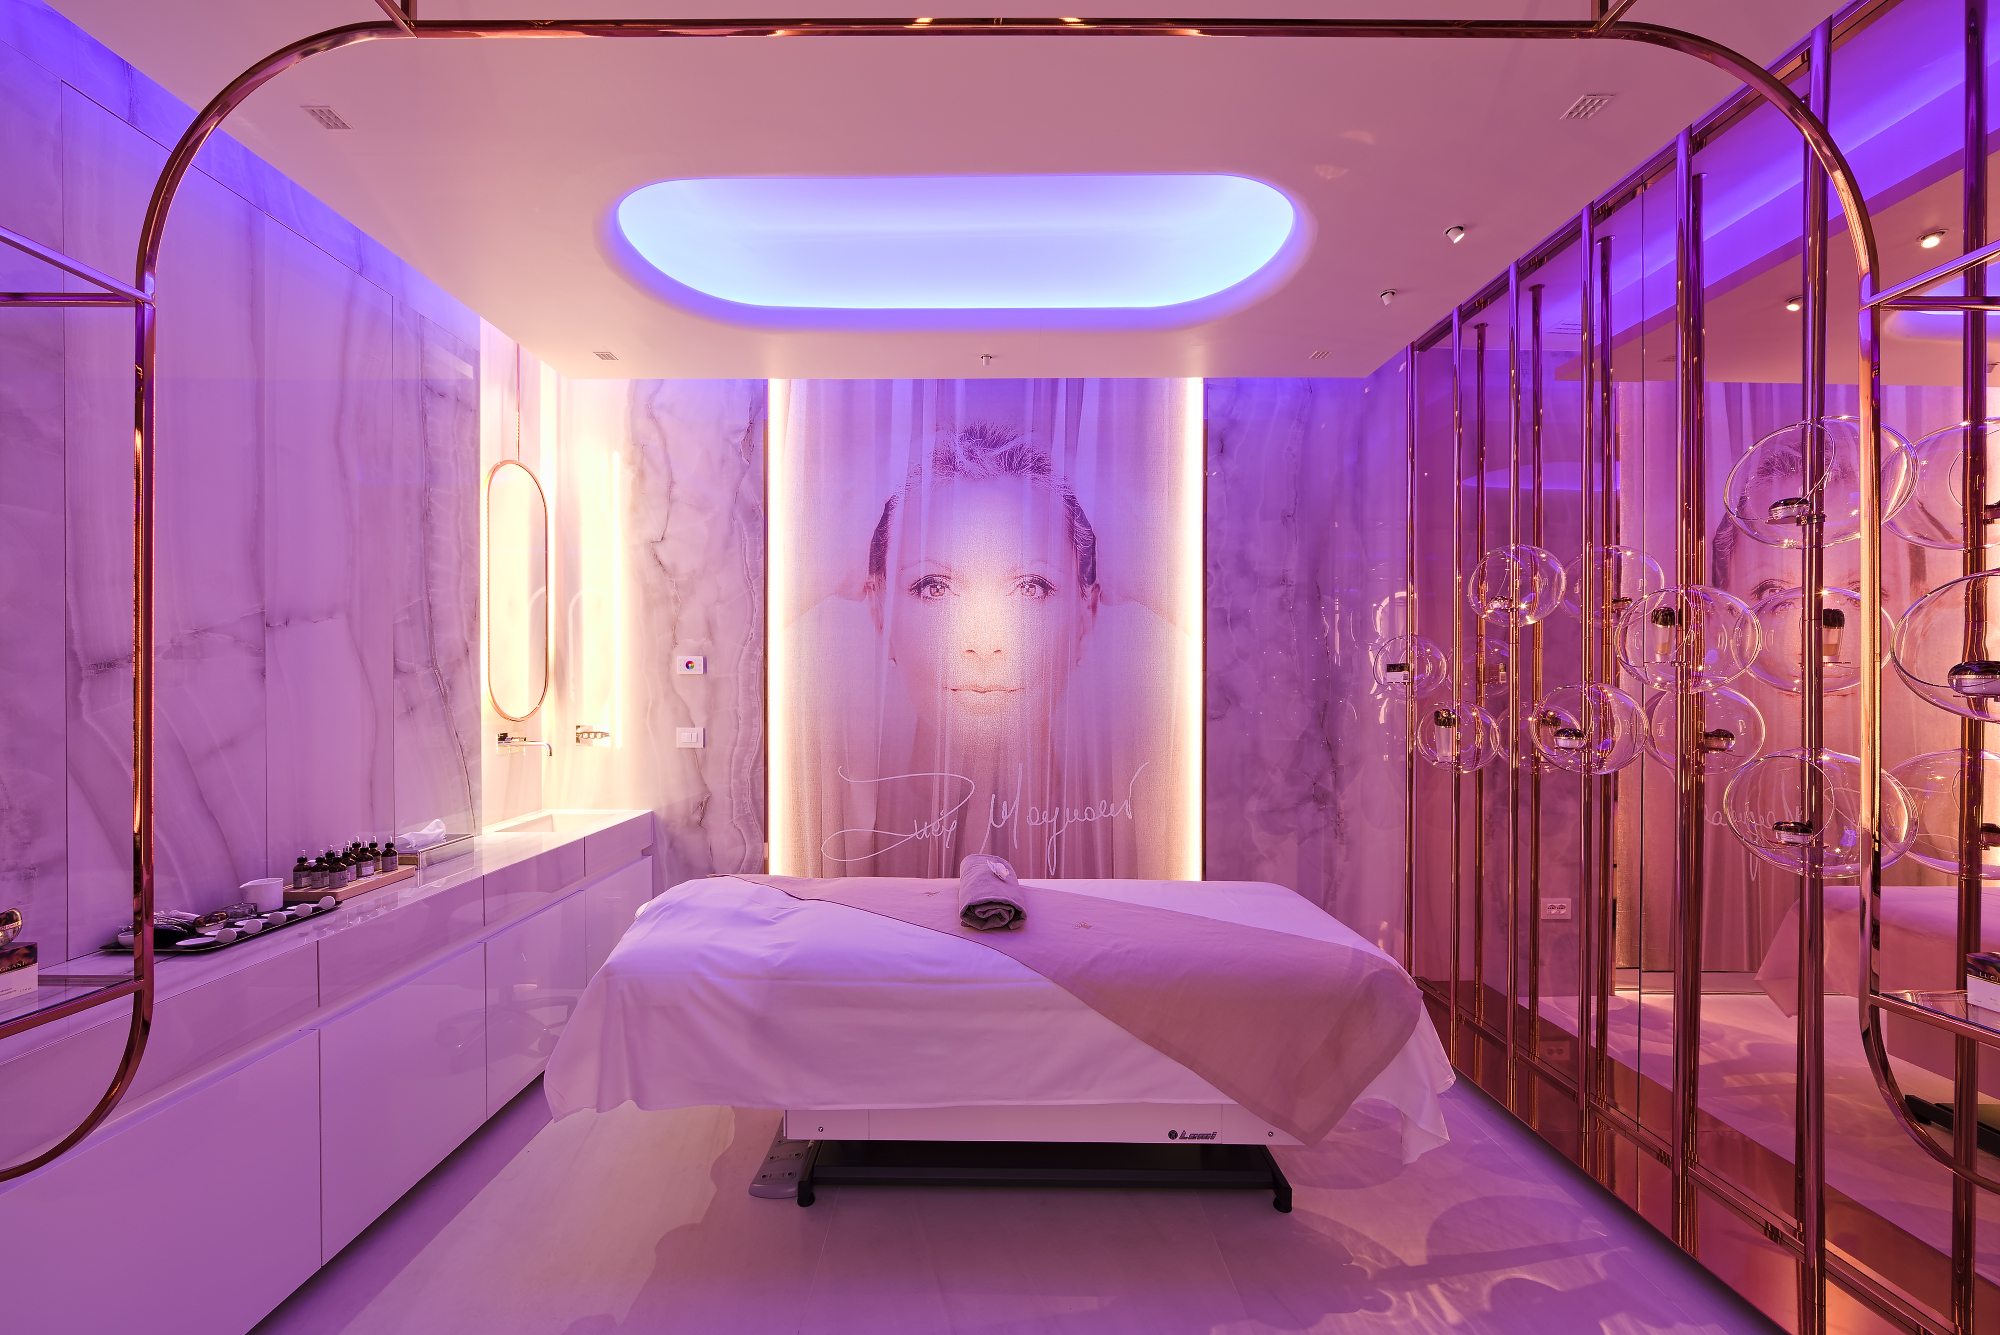 Lucia Magnani skincare face treatments room with chromotherapy and glass spheres for products exposition